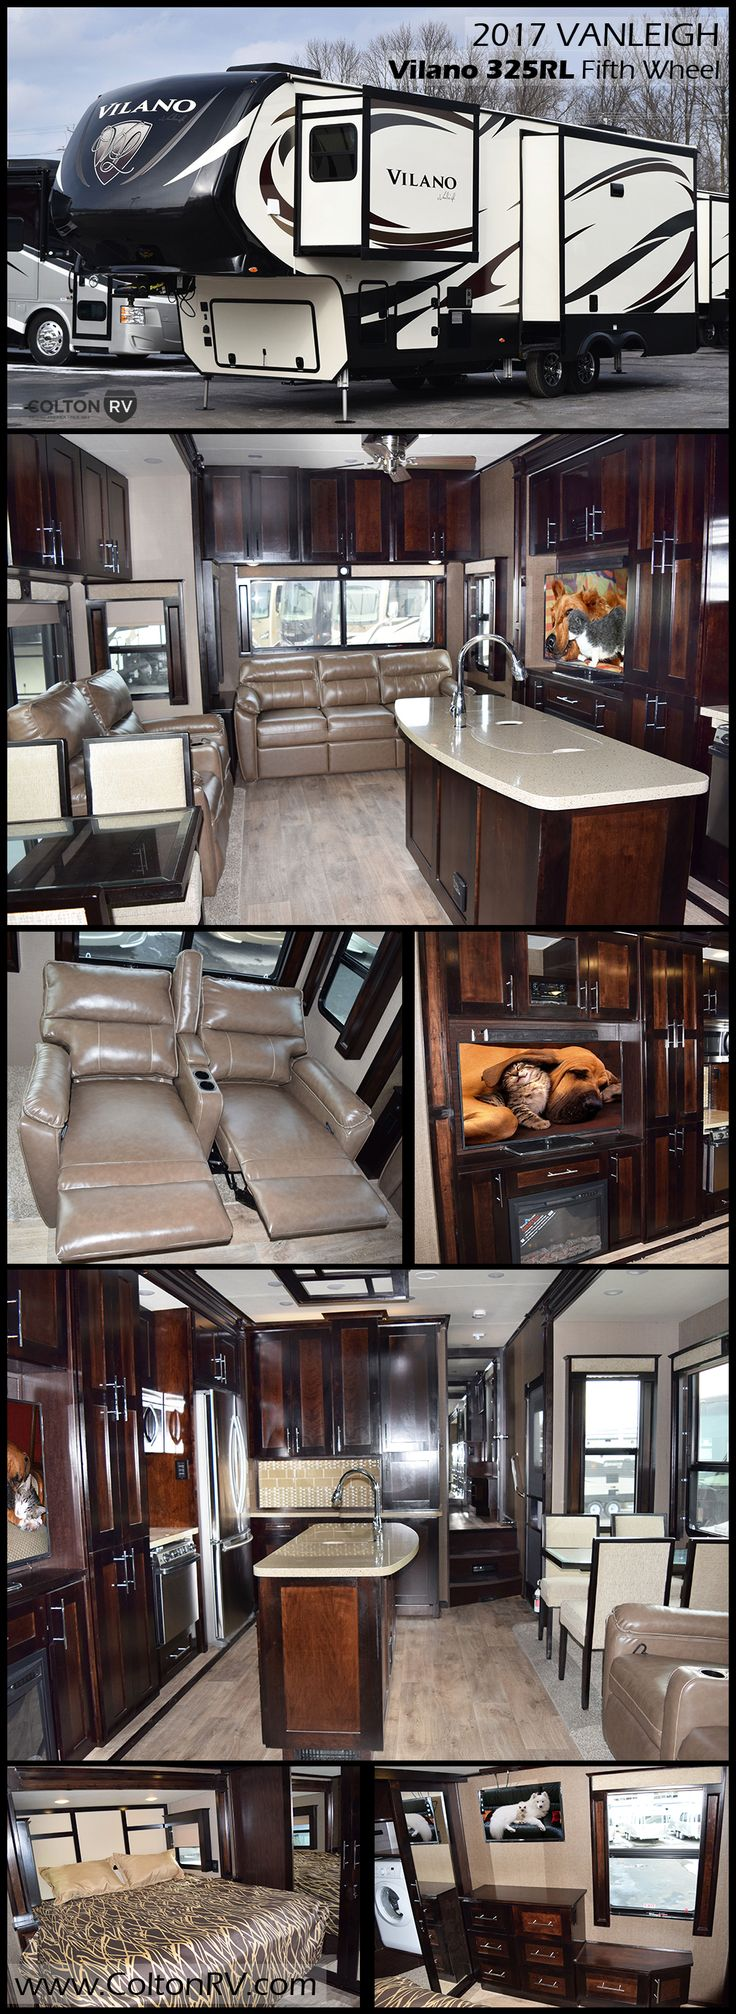 """One of the abundant advantages to being a Vilano customer is getting everything a """"luxury"""" fifth wheel offers without the price tag. This 2017 VANLEIGH VILANO 325RL Fifth Wheel presents all the elements one might need for an active weekend away or an extended vacation getaway. There is loads of storage, triple slides for added interior space and plenty of at-home features for you to enjoy while away from home in this 325RL."""